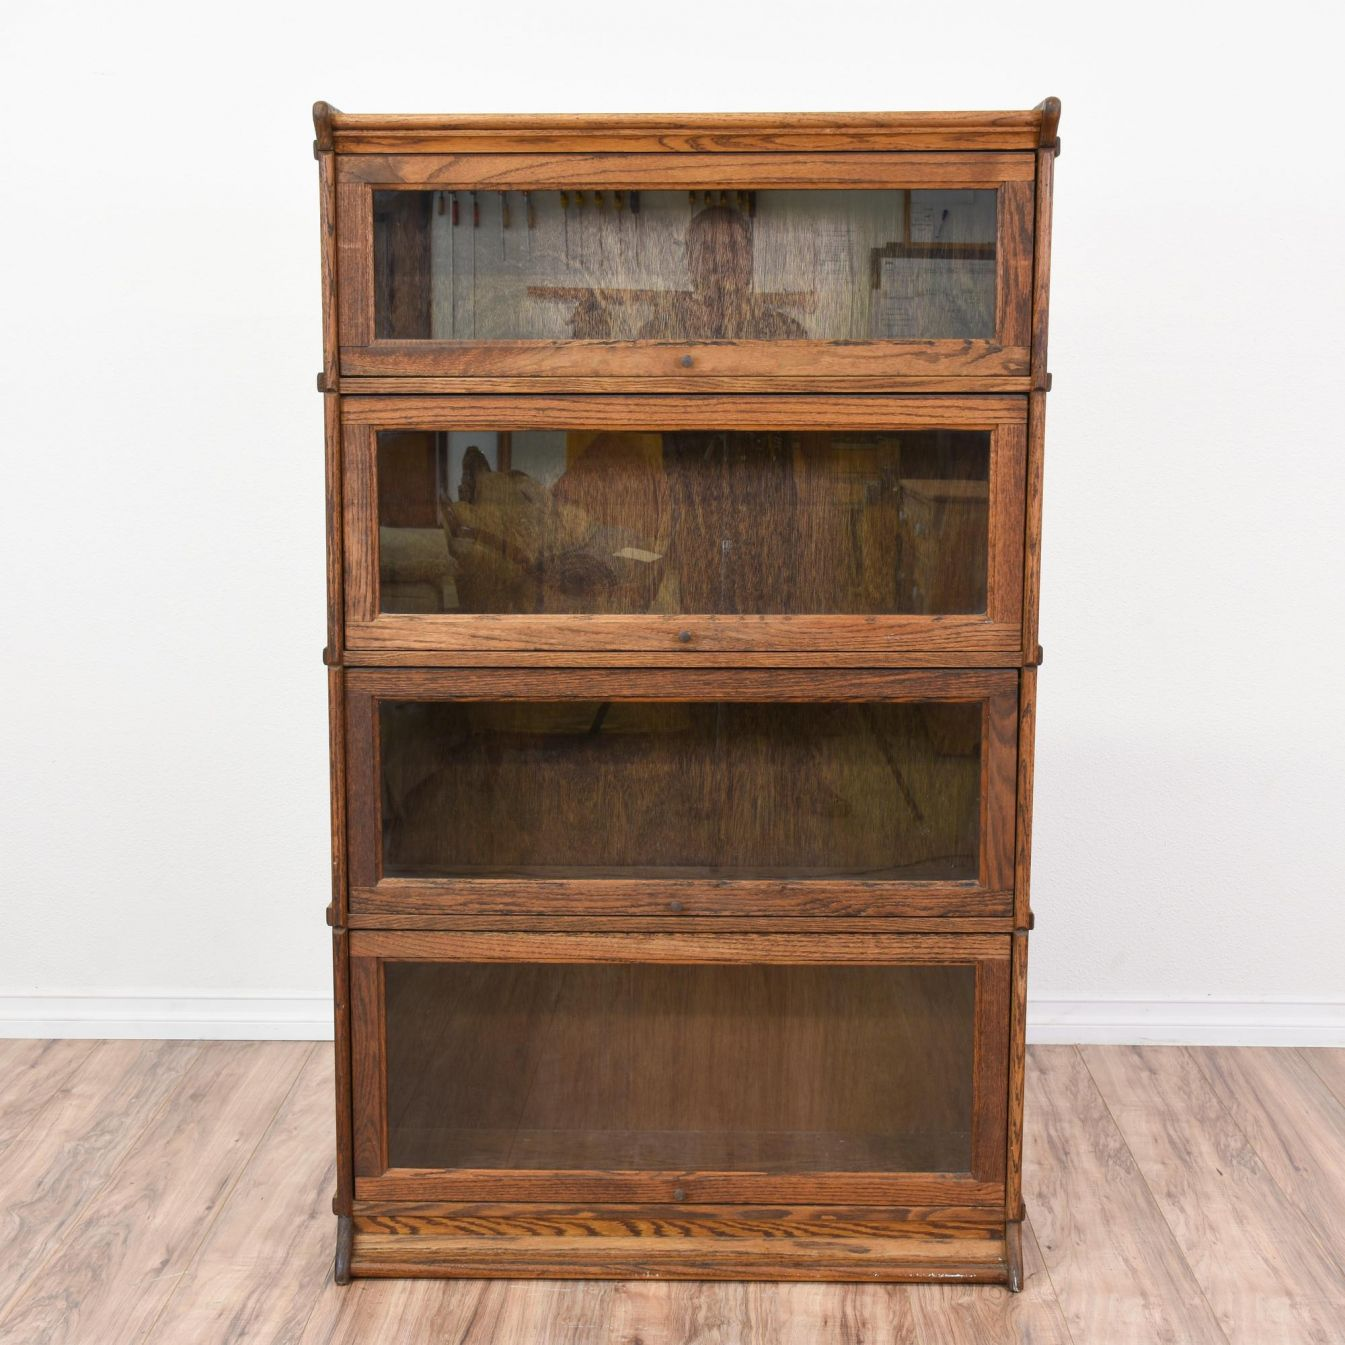 100+ Antique Oak Bookcase with Glass Doors - Luxury Modern Furniture Check  more at http - 100+ Antique Oak Bookcase With Glass Doors - Luxury Modern Furniture